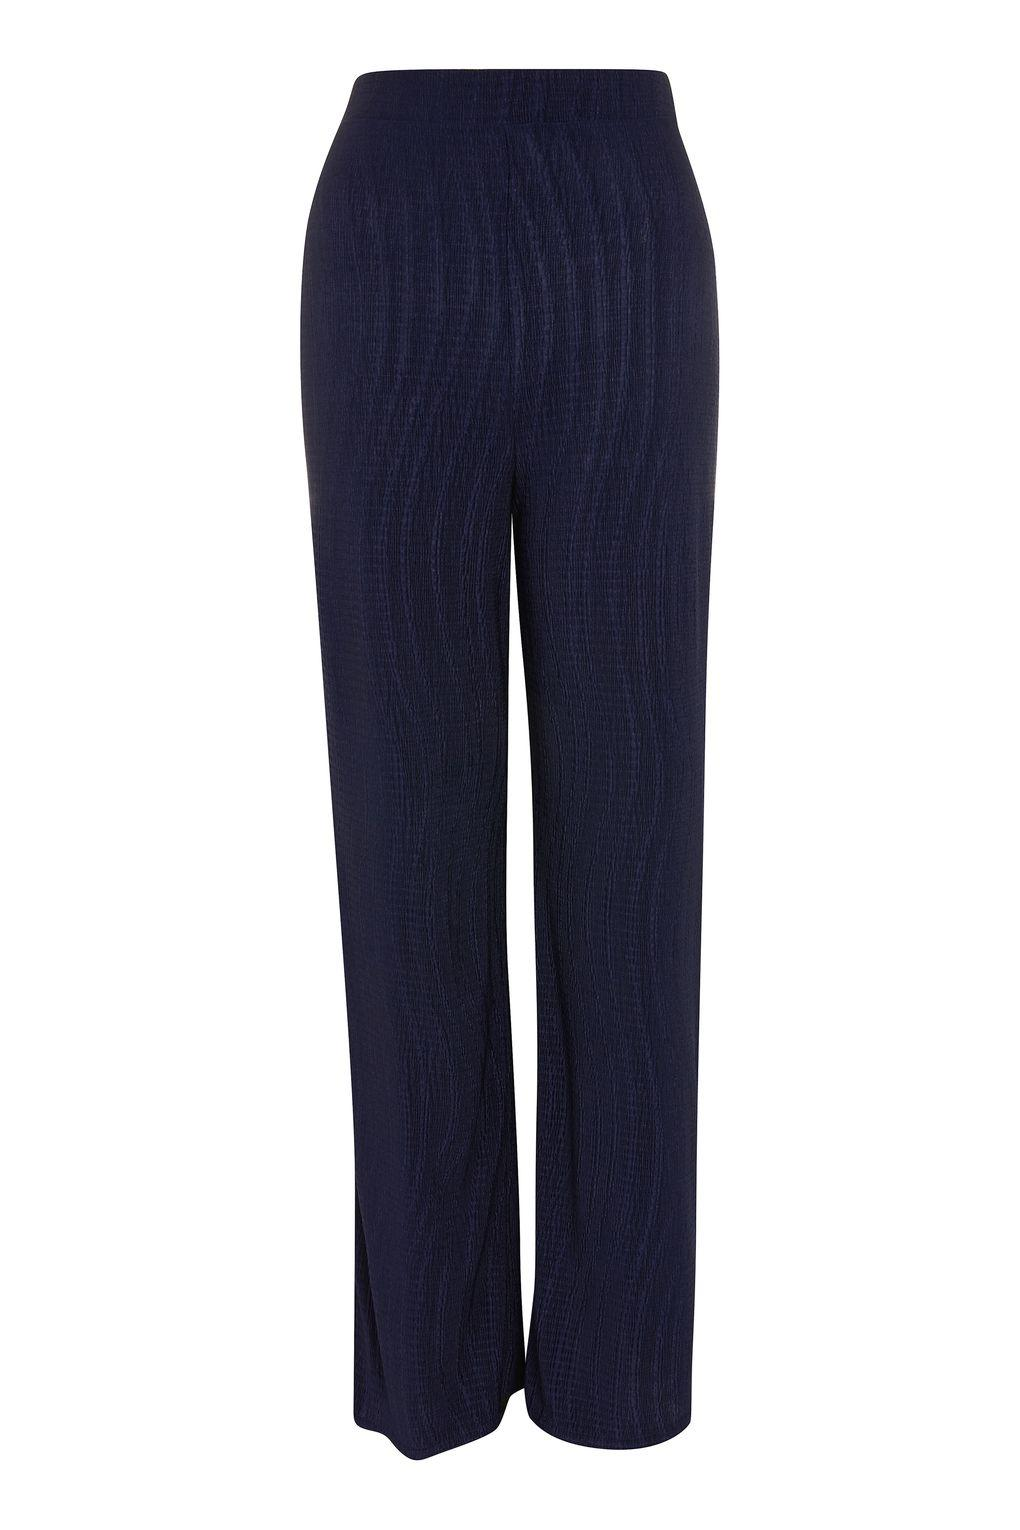 Love. Women's Blue Textured Trousers By